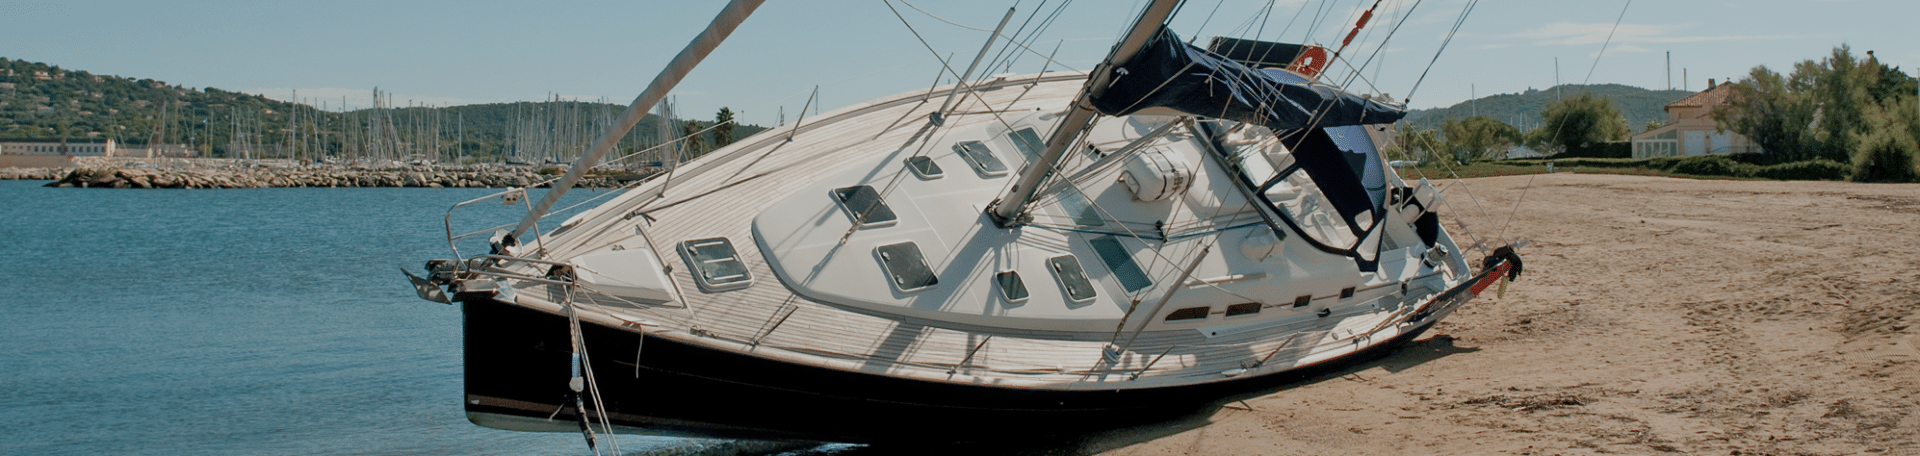 Best California Boating Accident Attorneys